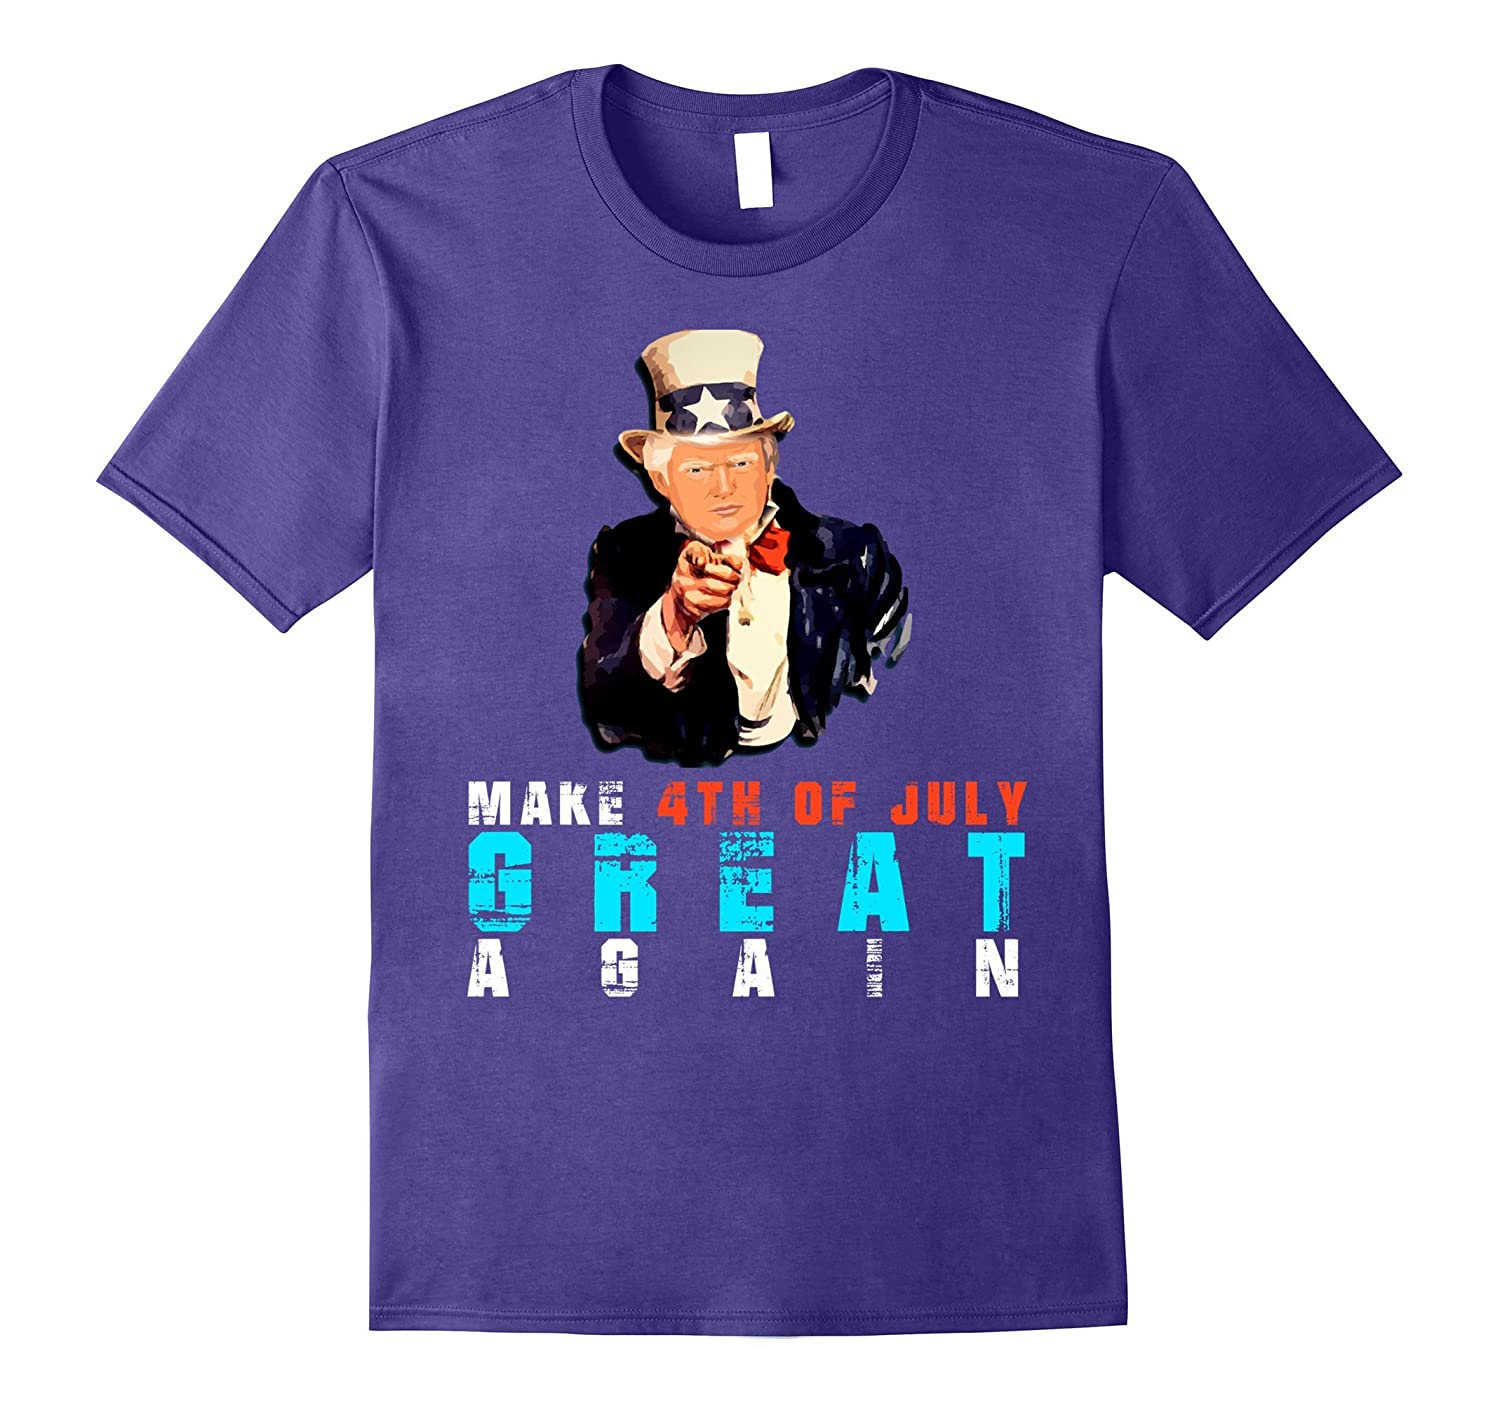 Officialmake 4th of july great again t-shirt Uncle Trump-PL